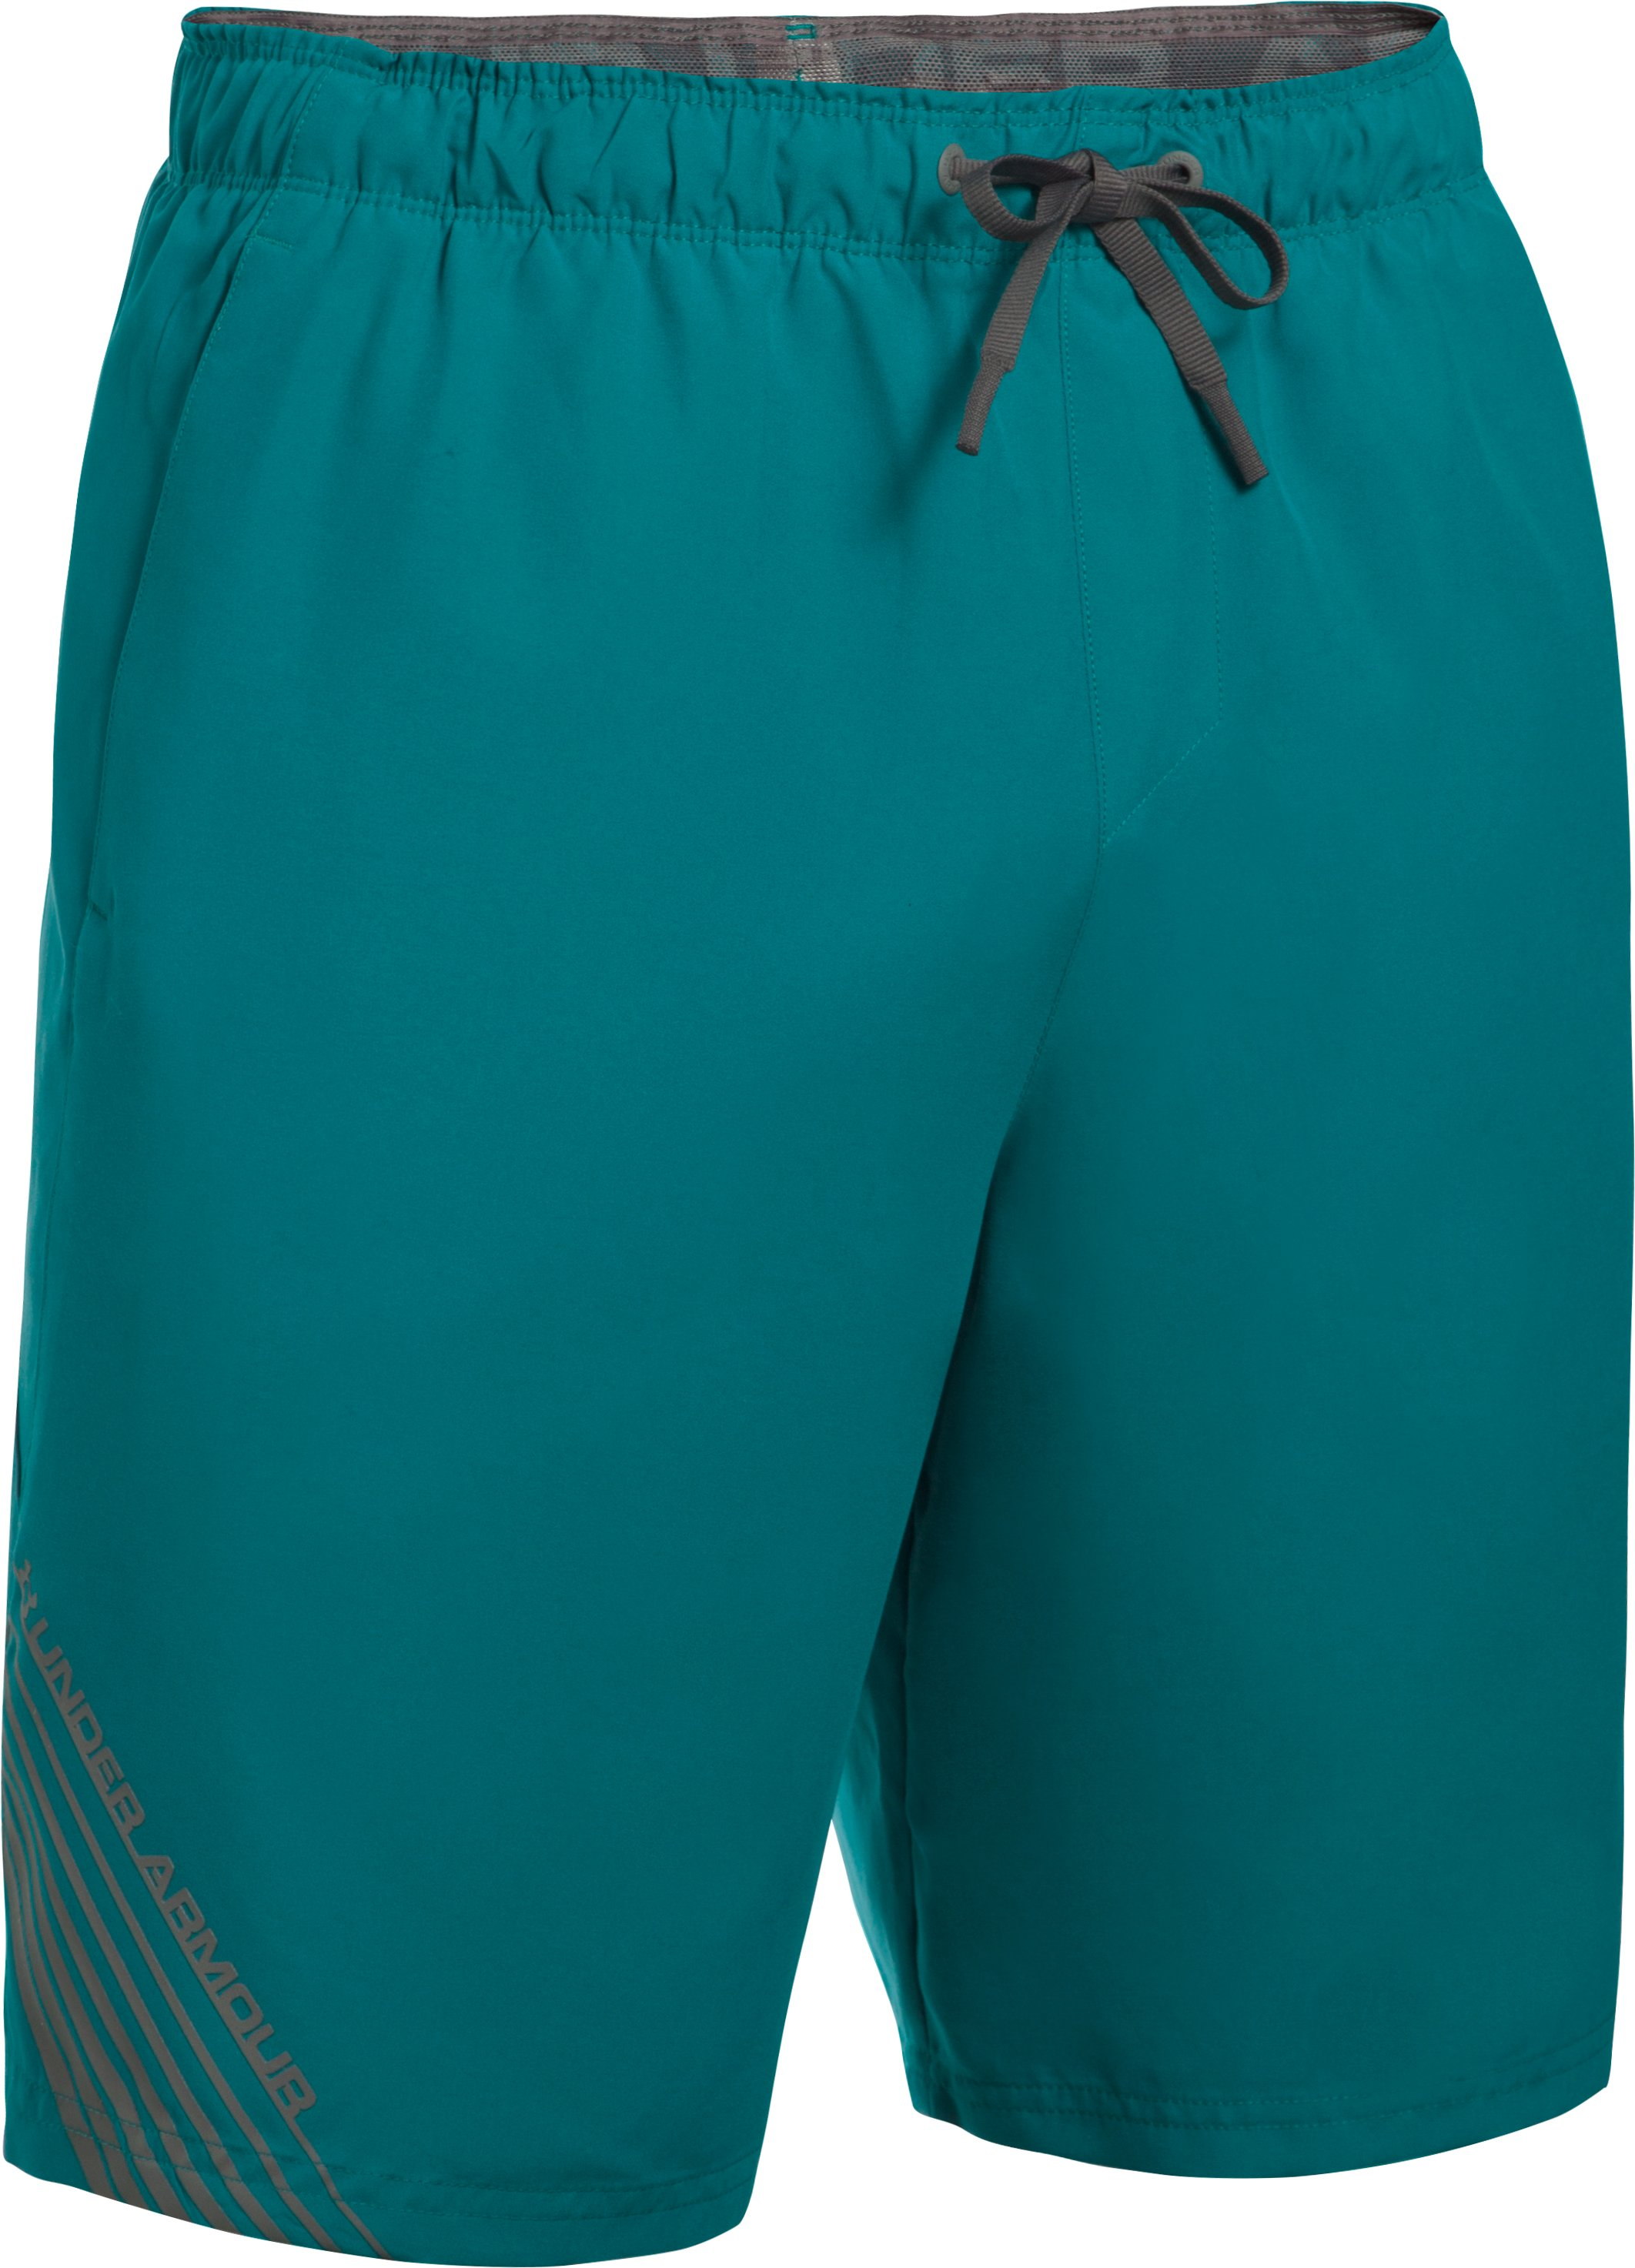 Men's UA Volley Boardshorts, TURQUOISE SKY